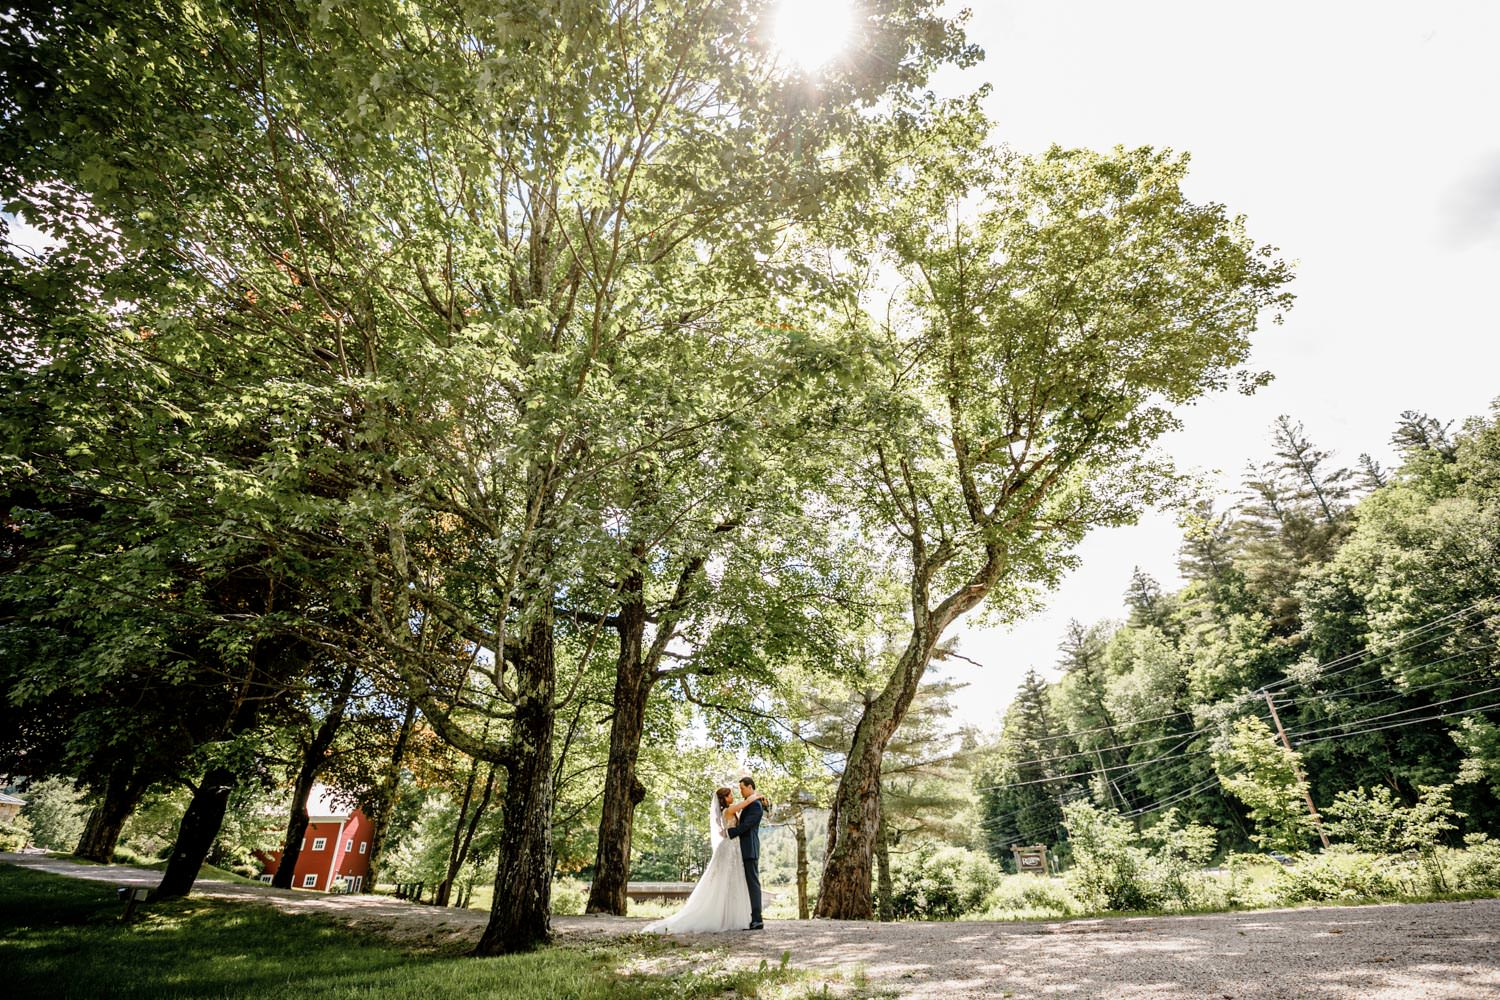 vermont wedding photographer captures first look on road at riverside farm